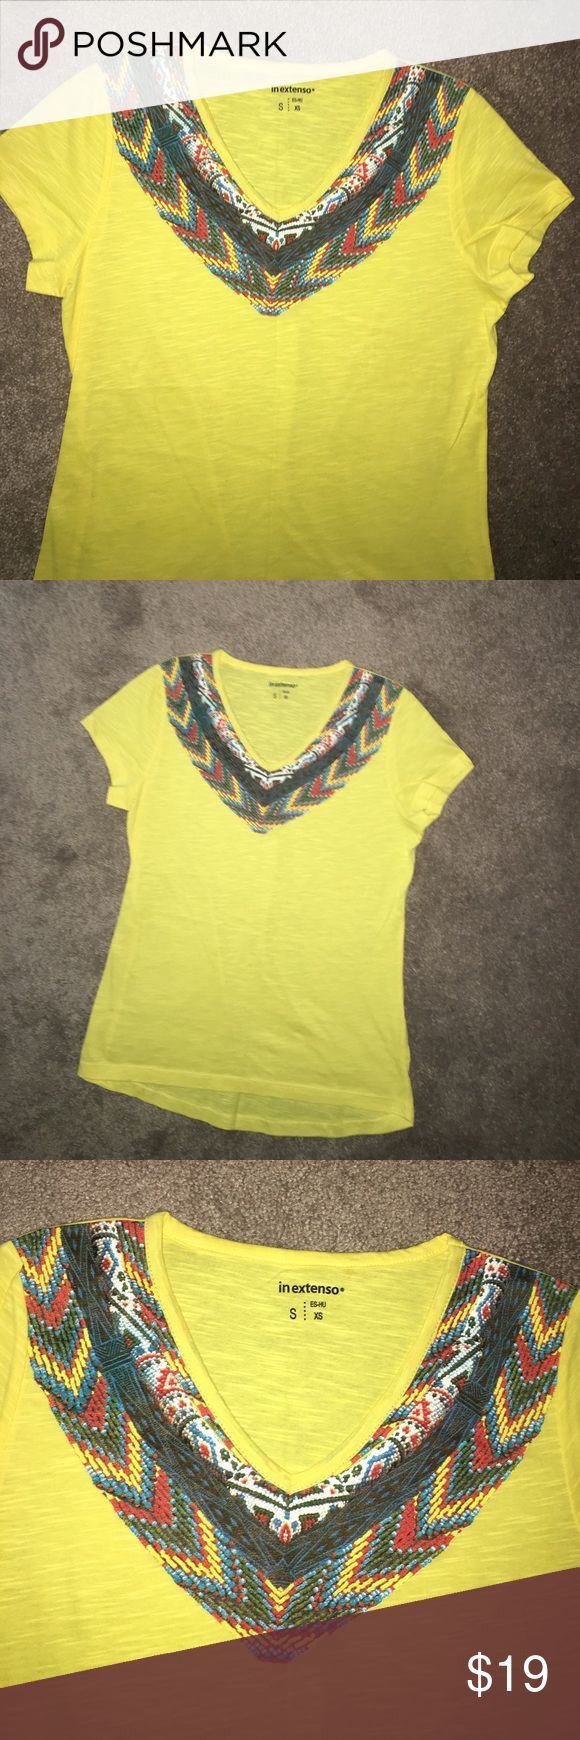 New top Europe brand No tag Brand New !both this summer from Spain never worn new yellow top Xs Victoria's Secret Tops Tank Tops